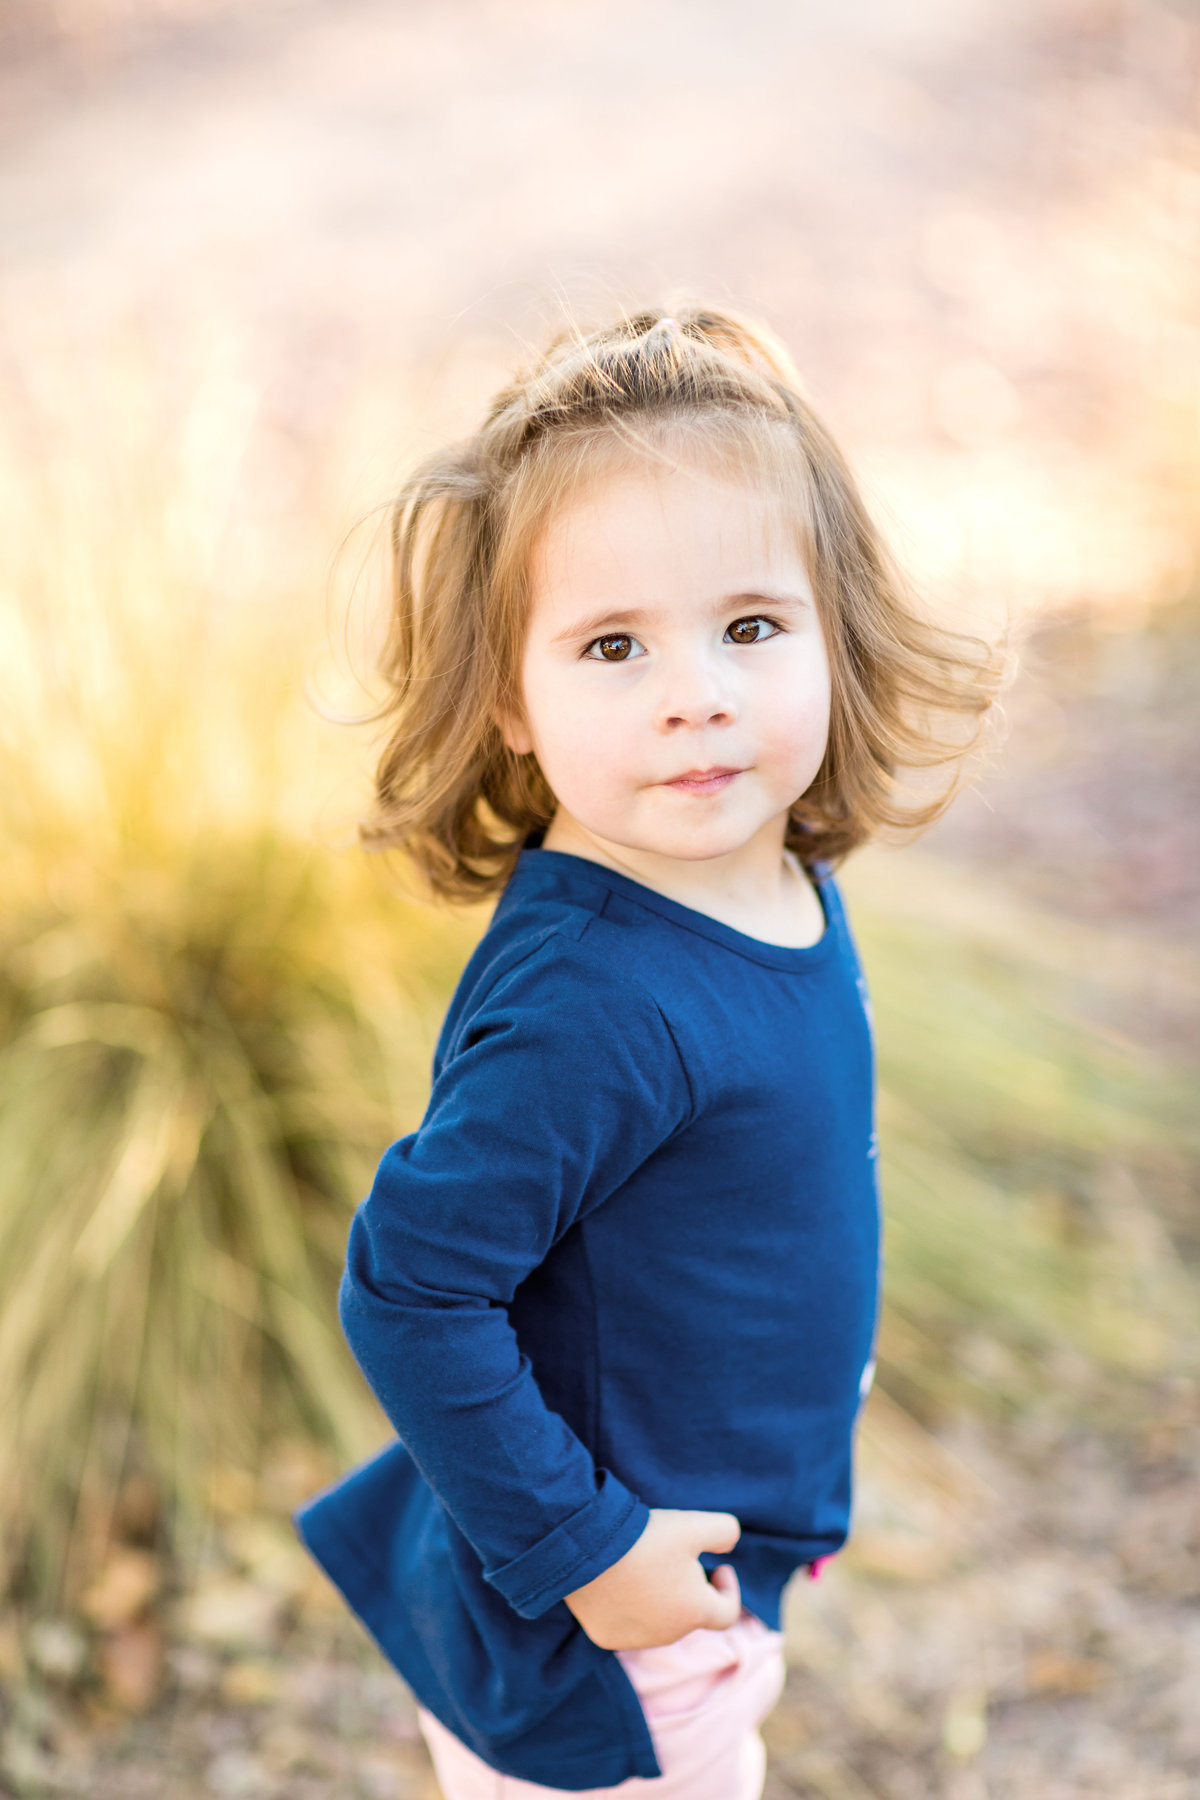 Toddler poses for a portrait outside